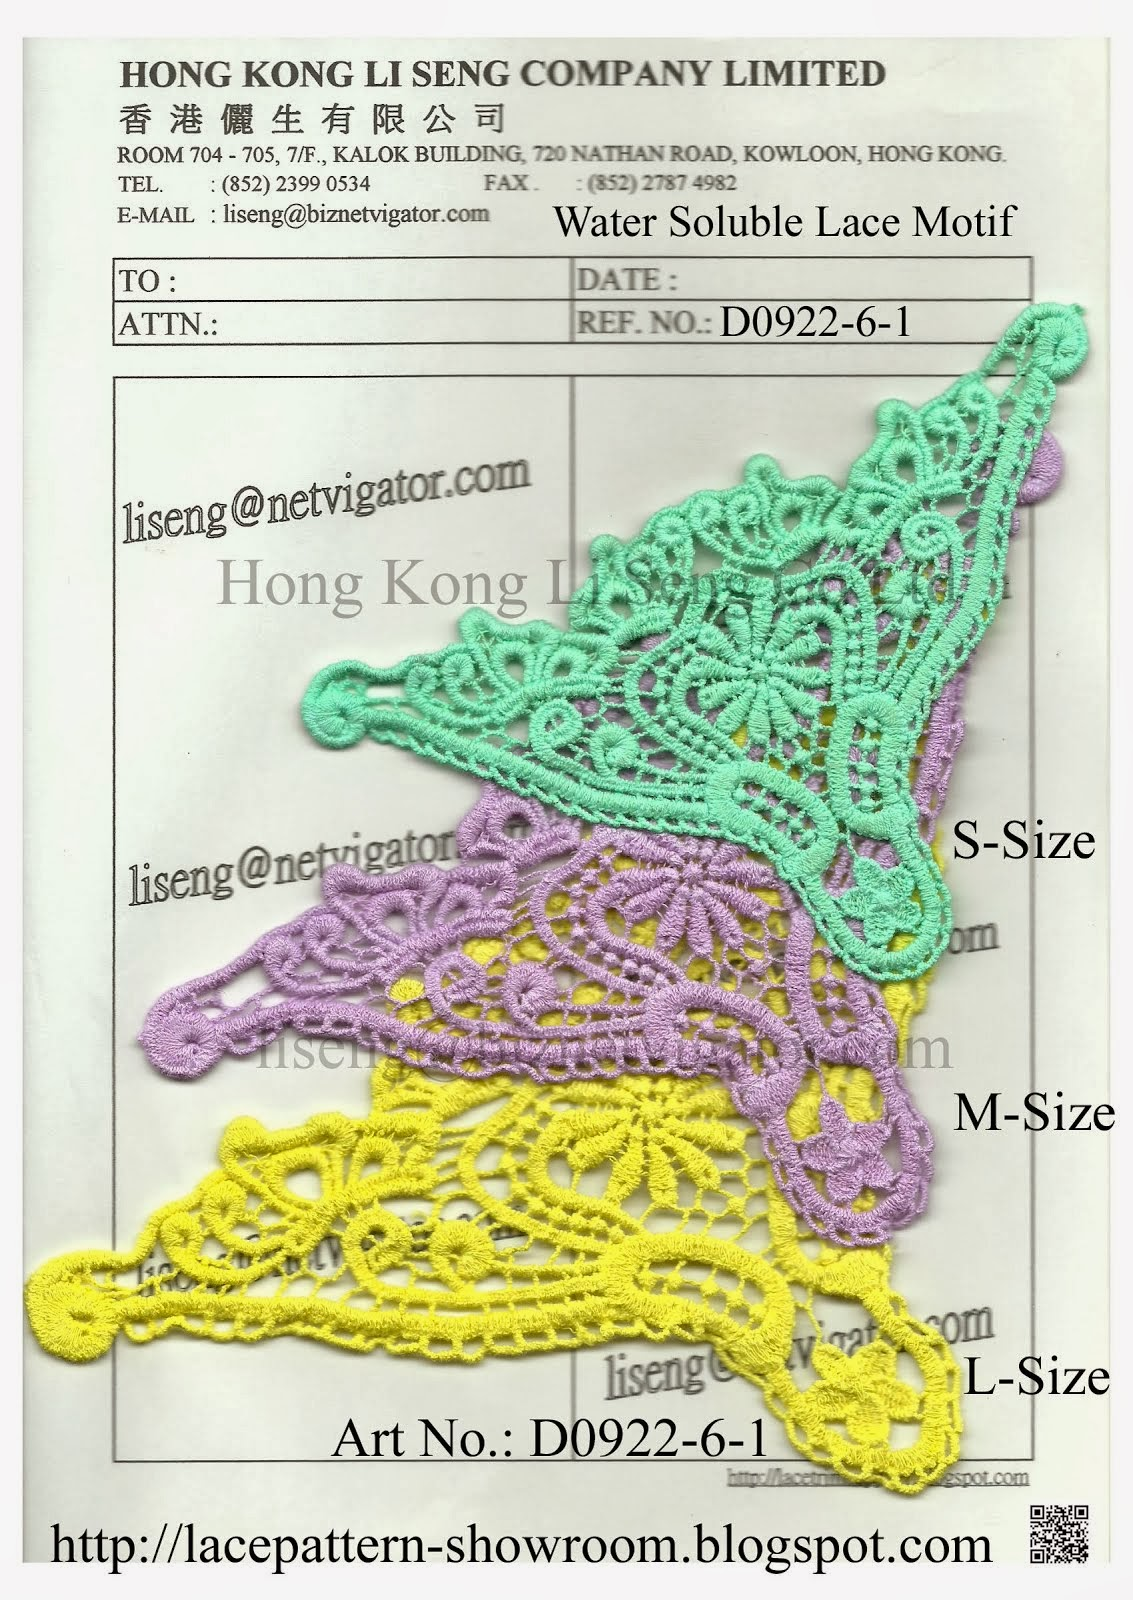 New Lace Pattern Wholesale - Water Soluble Lace Motif Manufacturer and Supplier